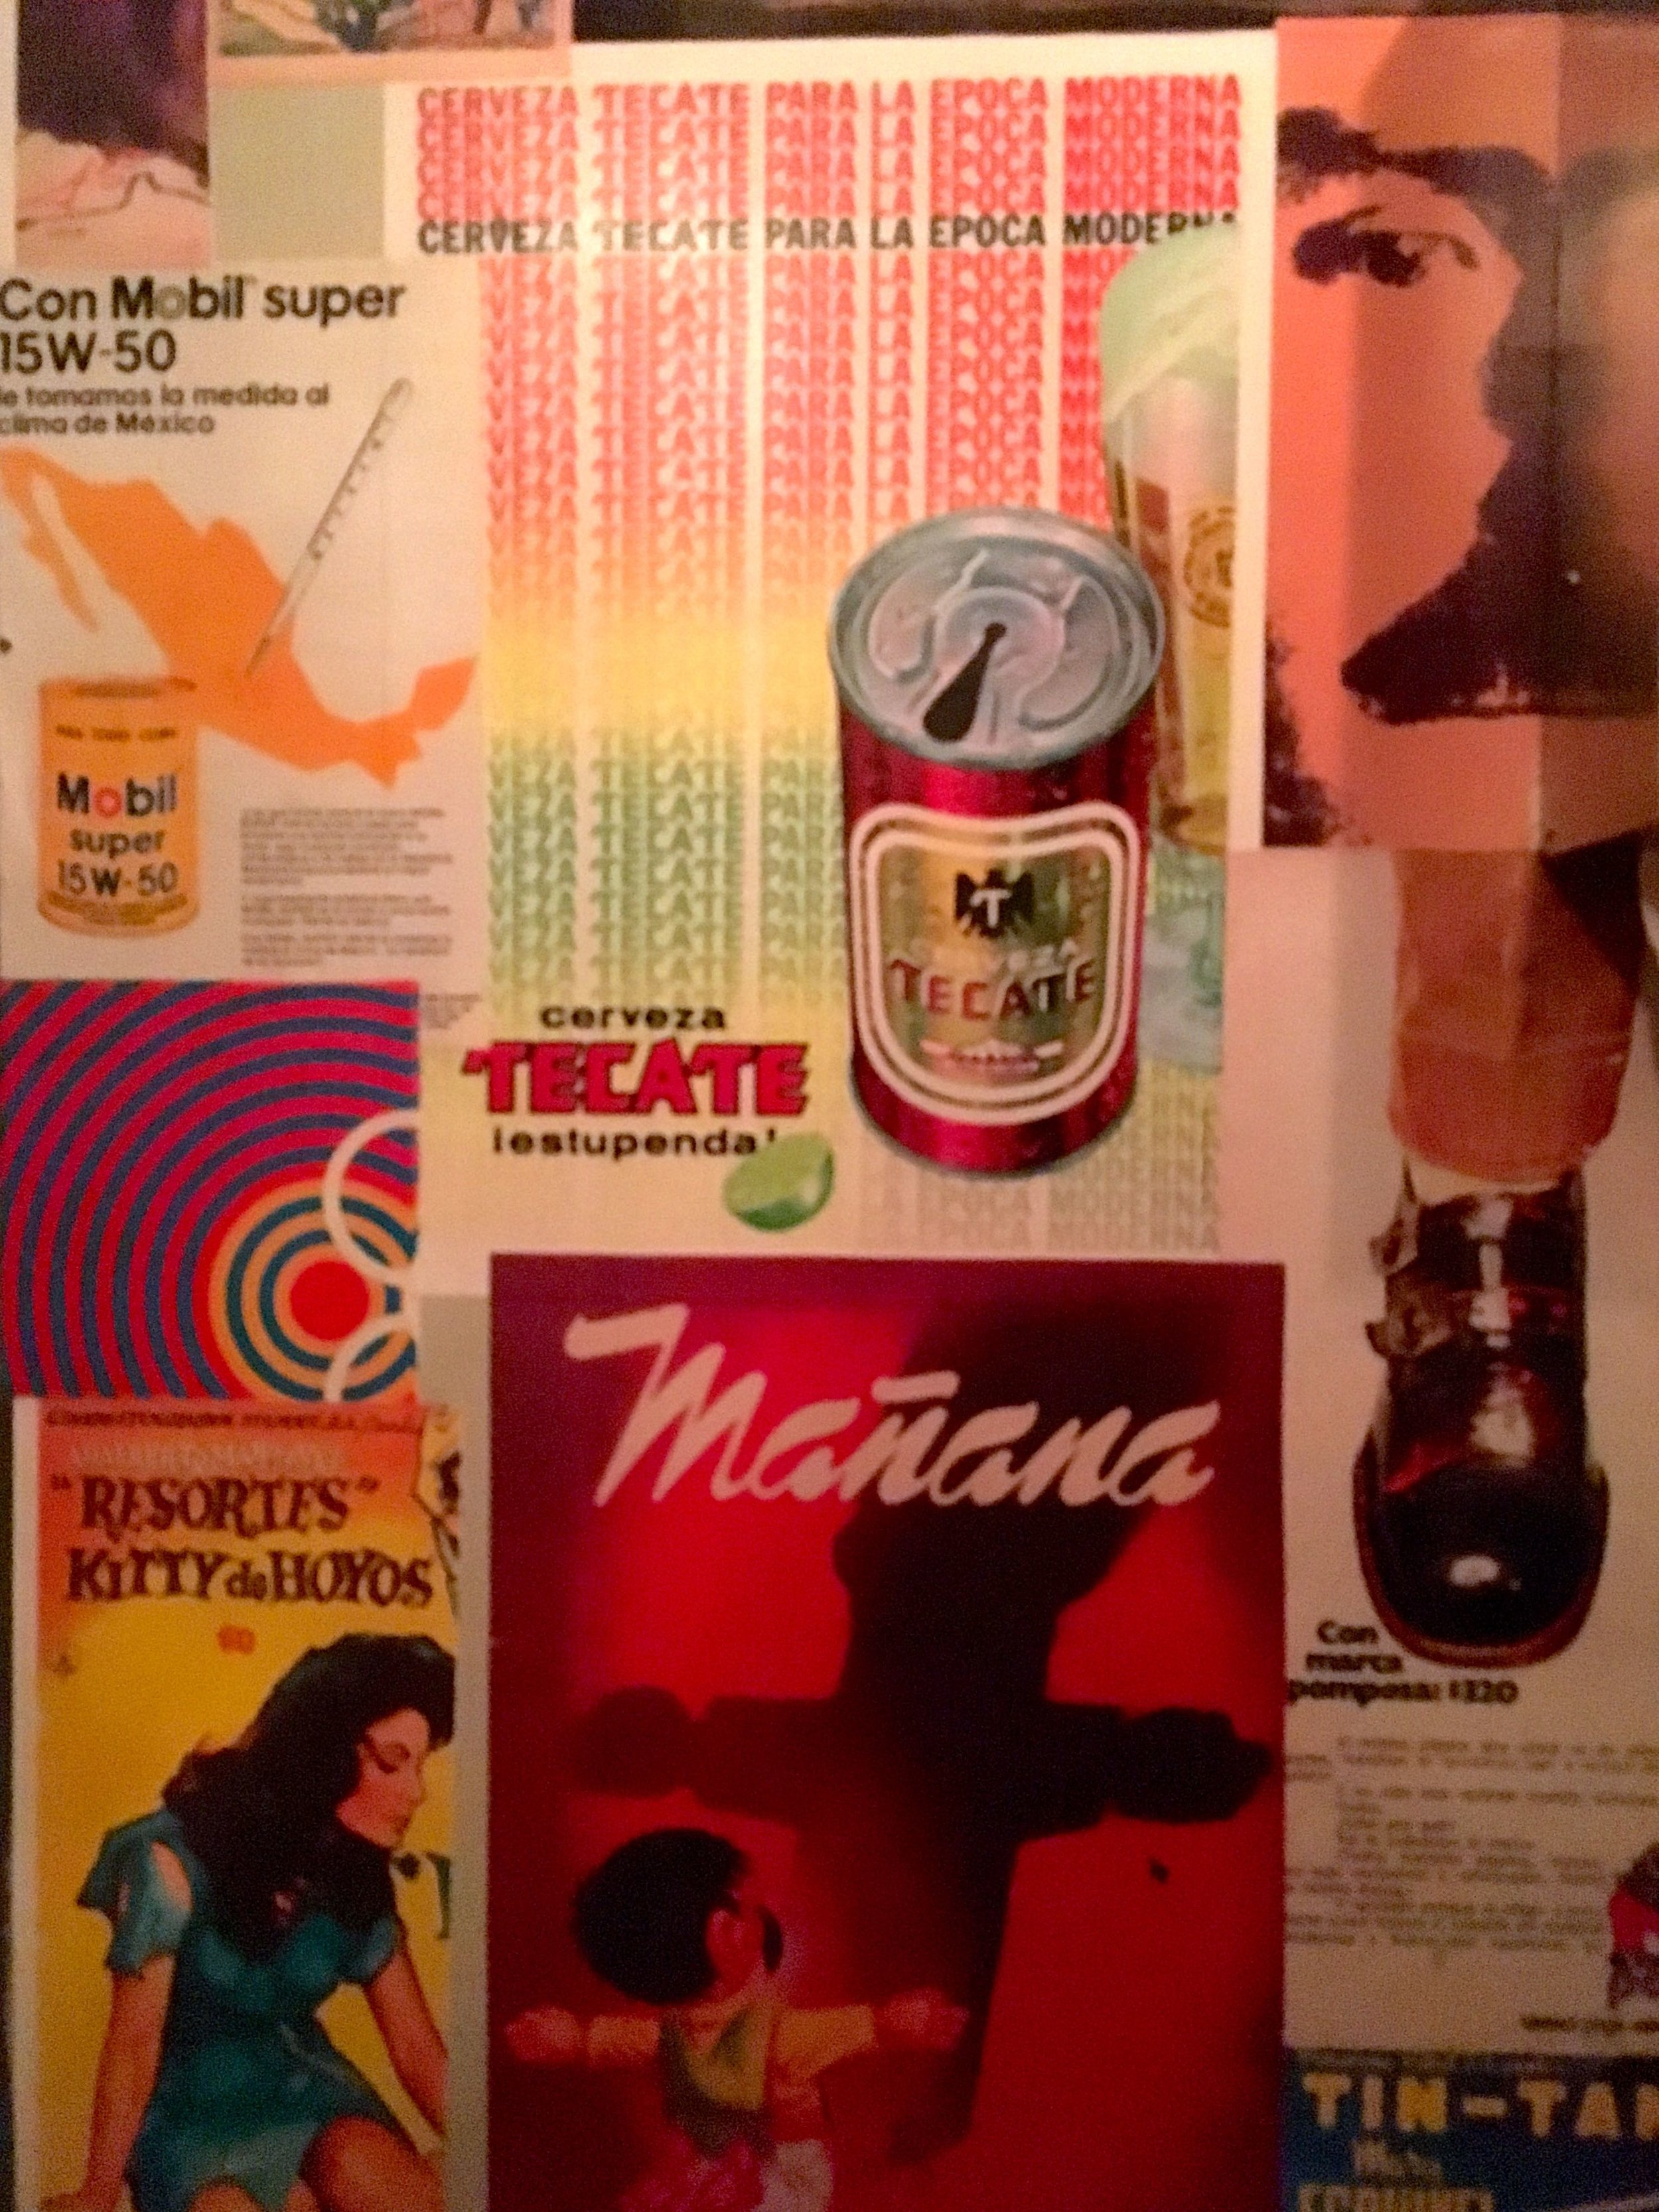 Modern art covers the walls in the loos at El Pastor